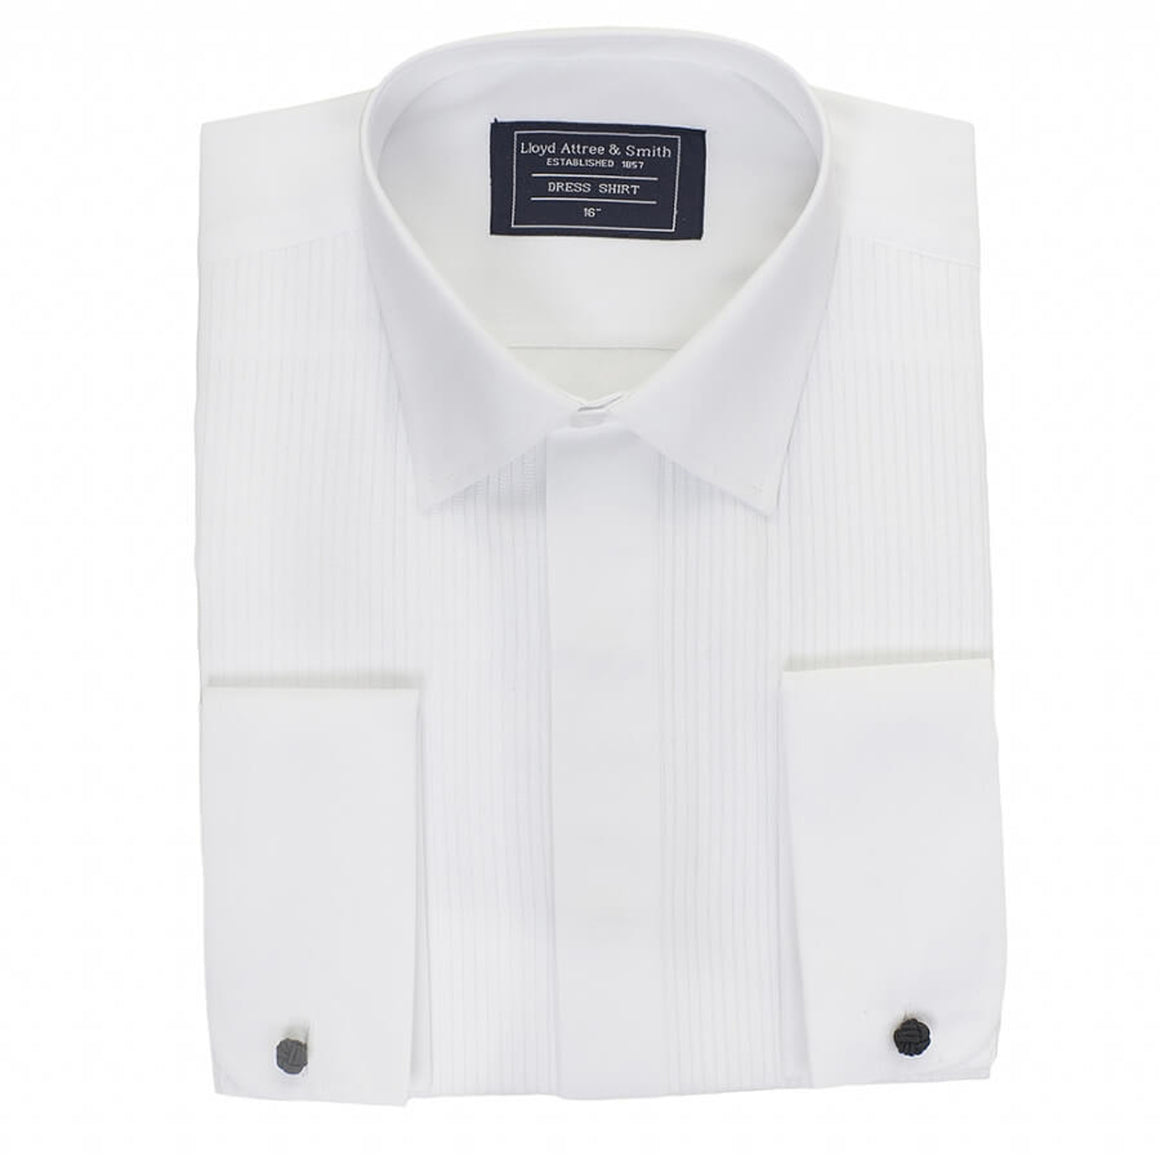 Pleated Standard Collar Dress Shirt for Men in White